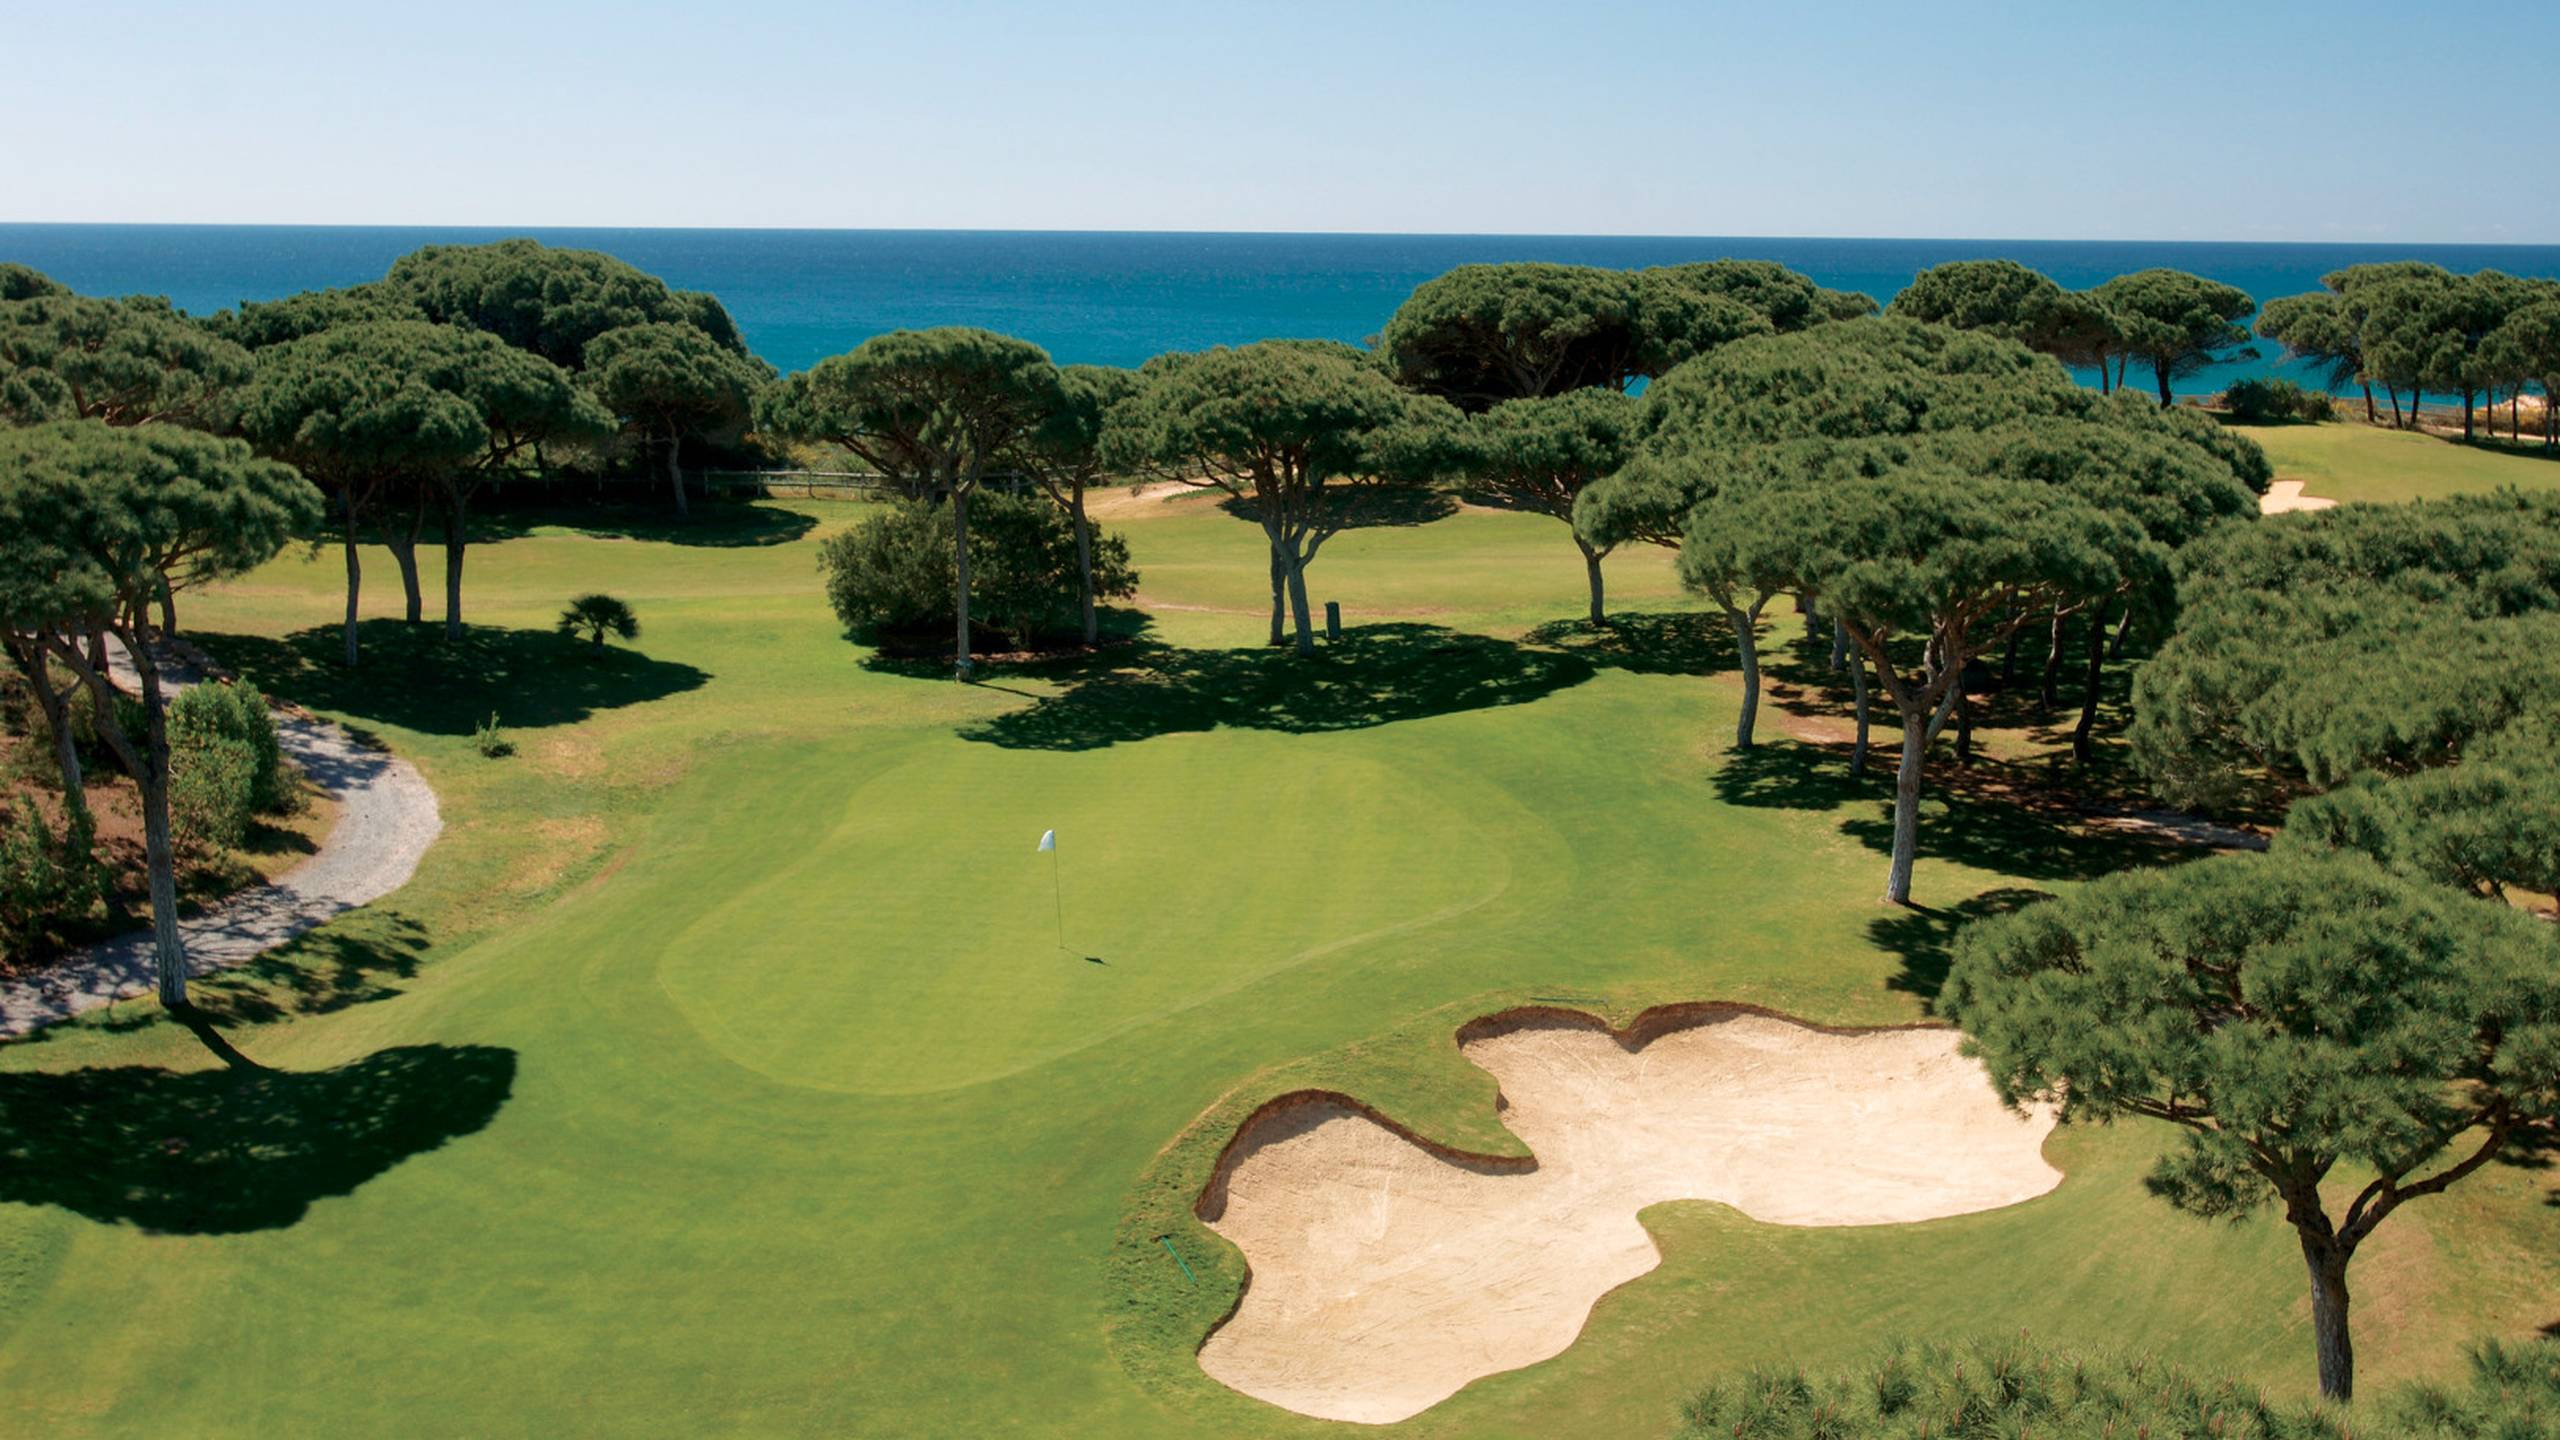 The Best Golf Resorts In Portugal best golf resorts The Best Golf Resorts In Portugal 08ca82e867d9c93b078f712cae68ea6d galleru full